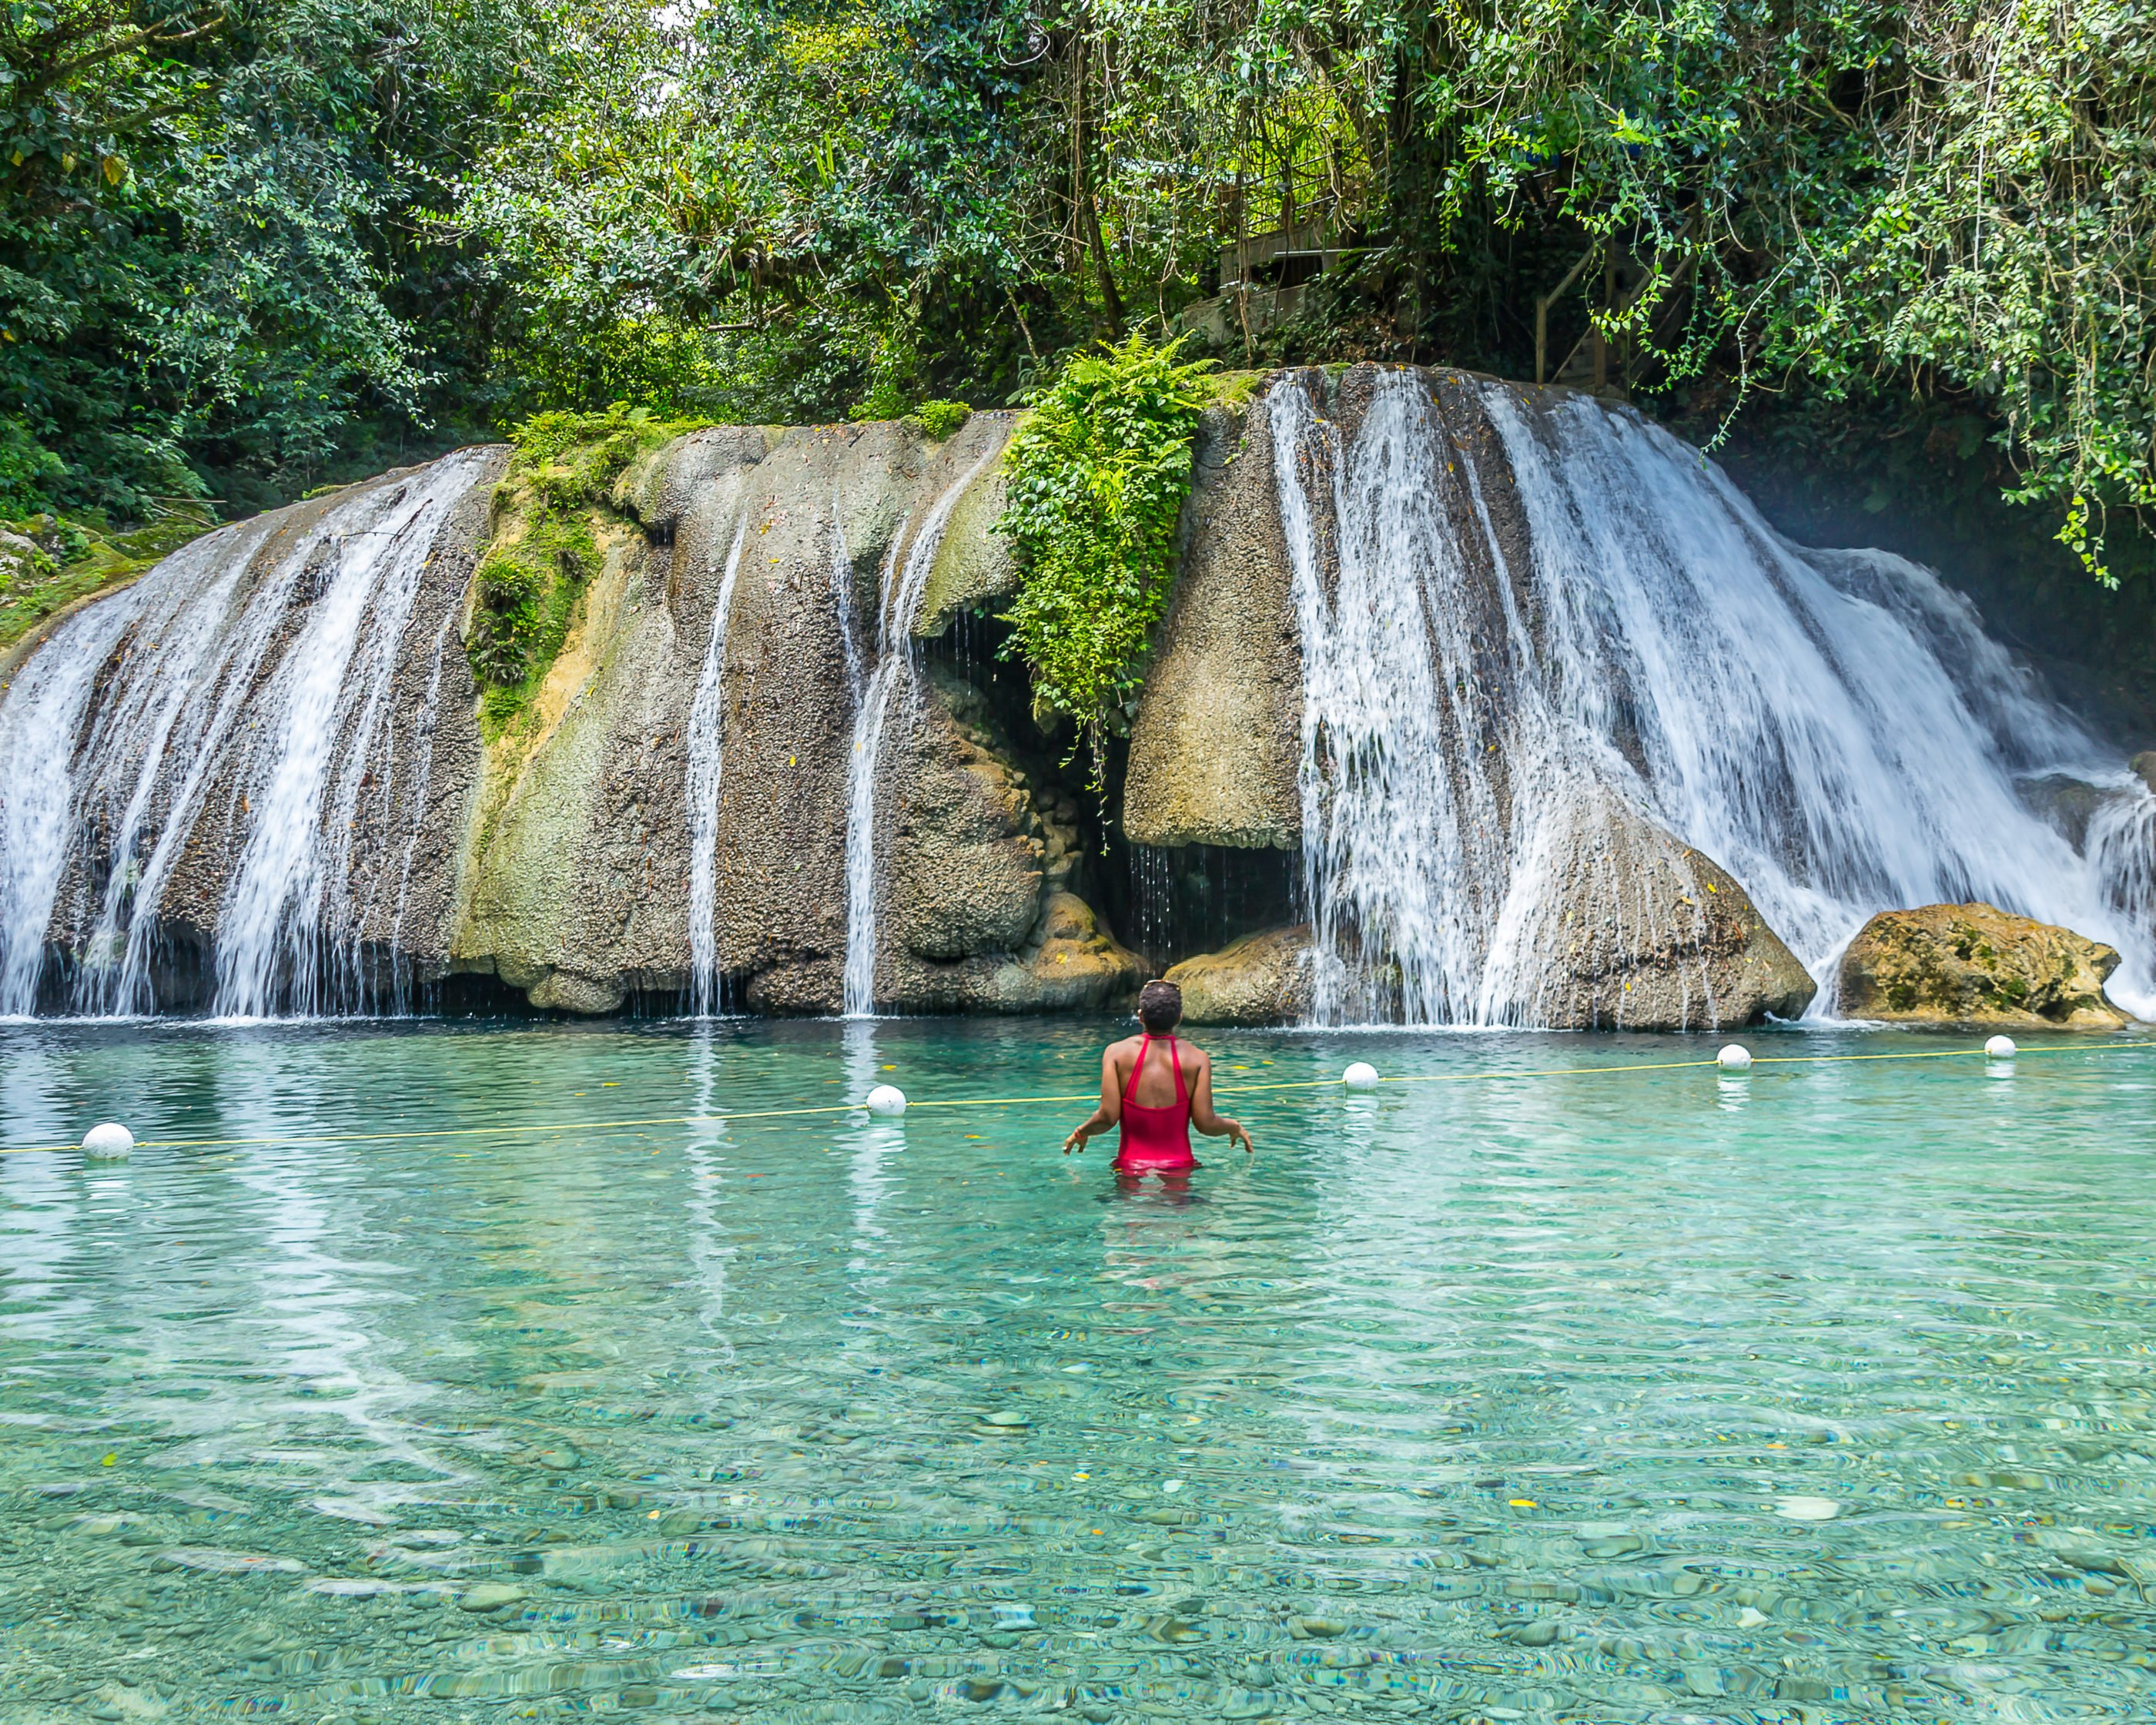 A woman in a red bathing suit wading in waist deep clear water faces Reach Falls.